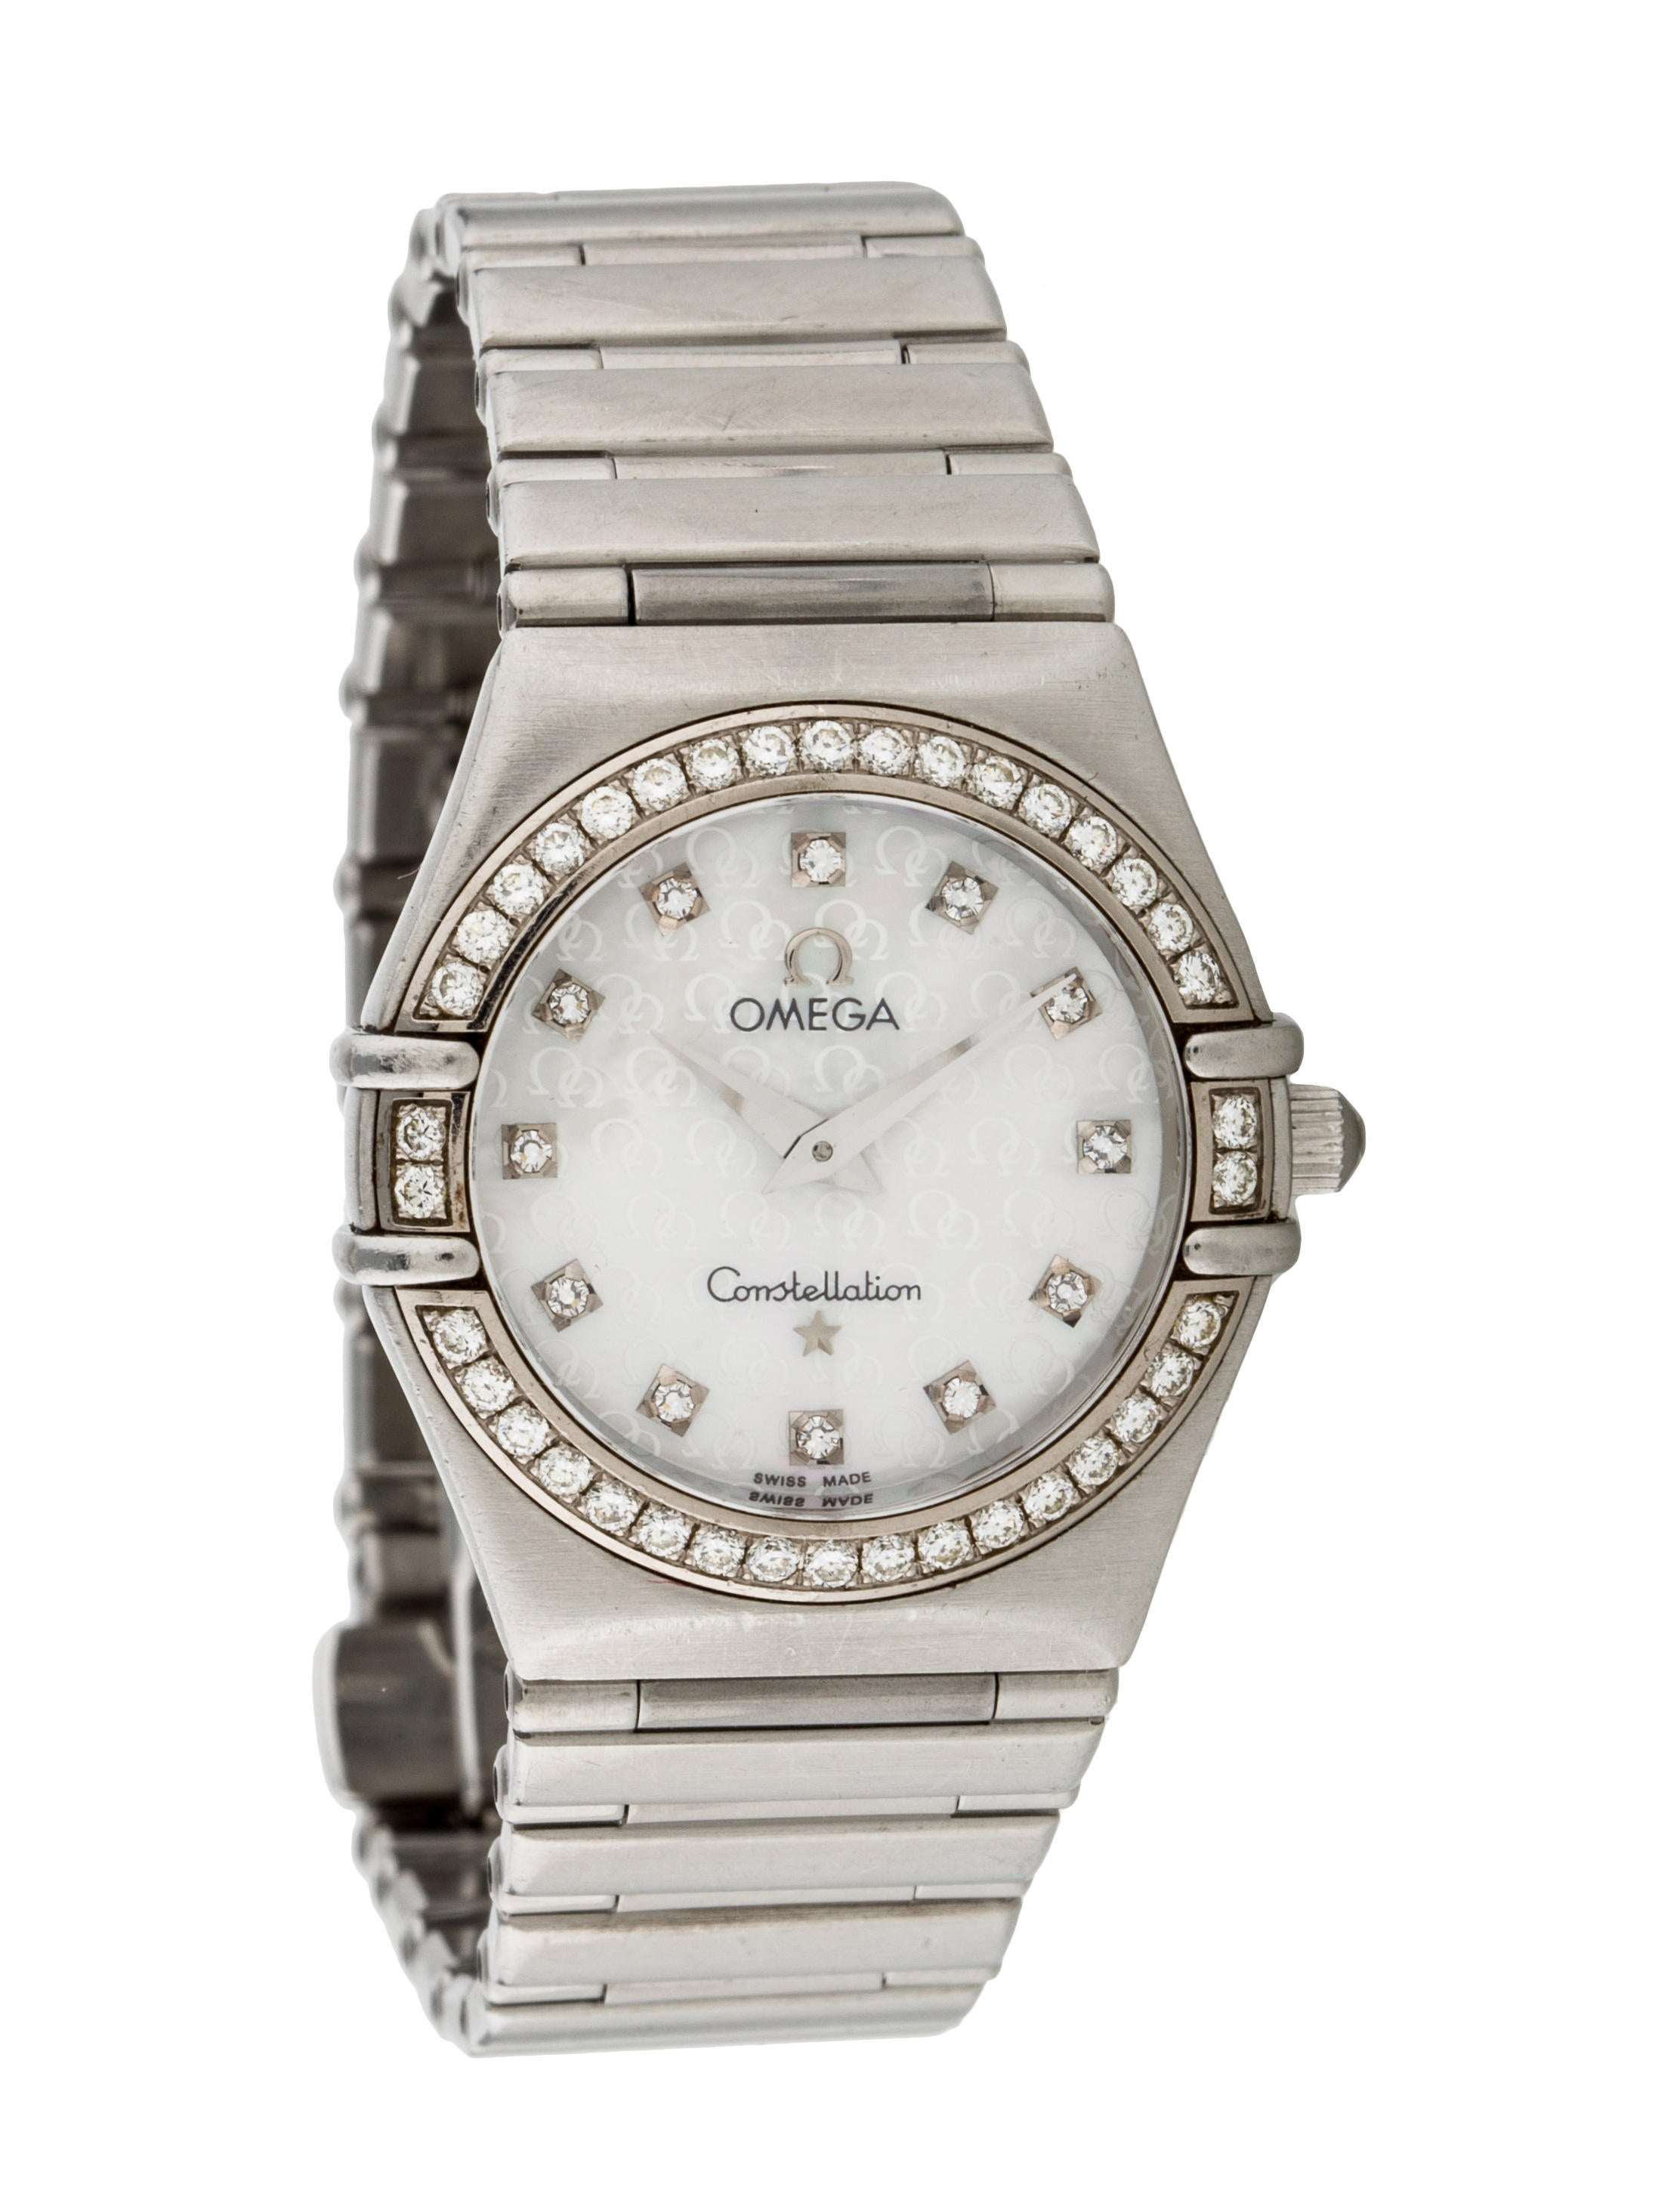 Omega constellation watch bracelet omg20482 the realreal for Omega watch constellation